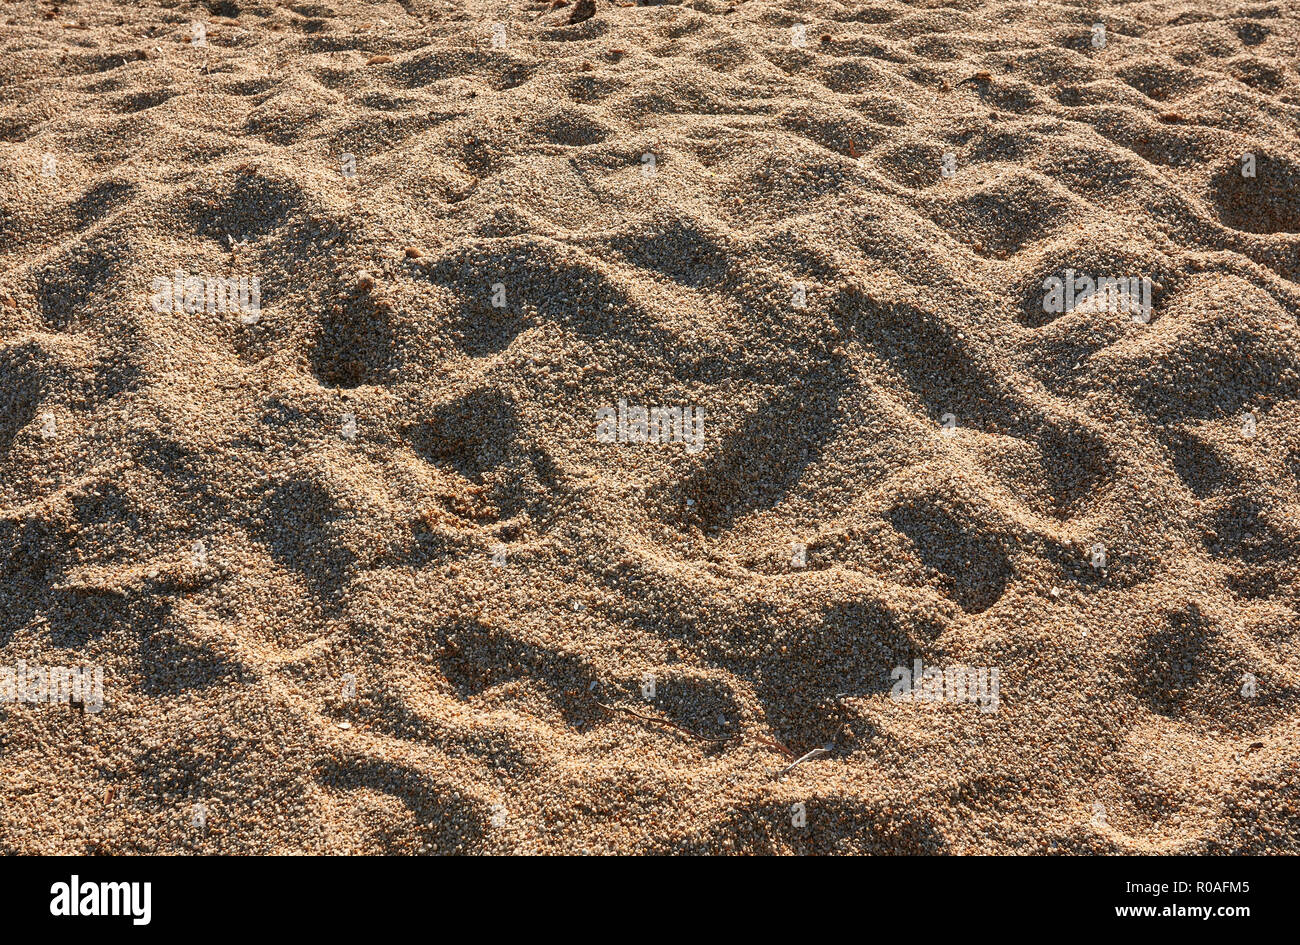 High Definition Texture Of The Sand Of The Beach With Big Grains Typical Of Southern Sardinia In Italy Stock Photo Alamy